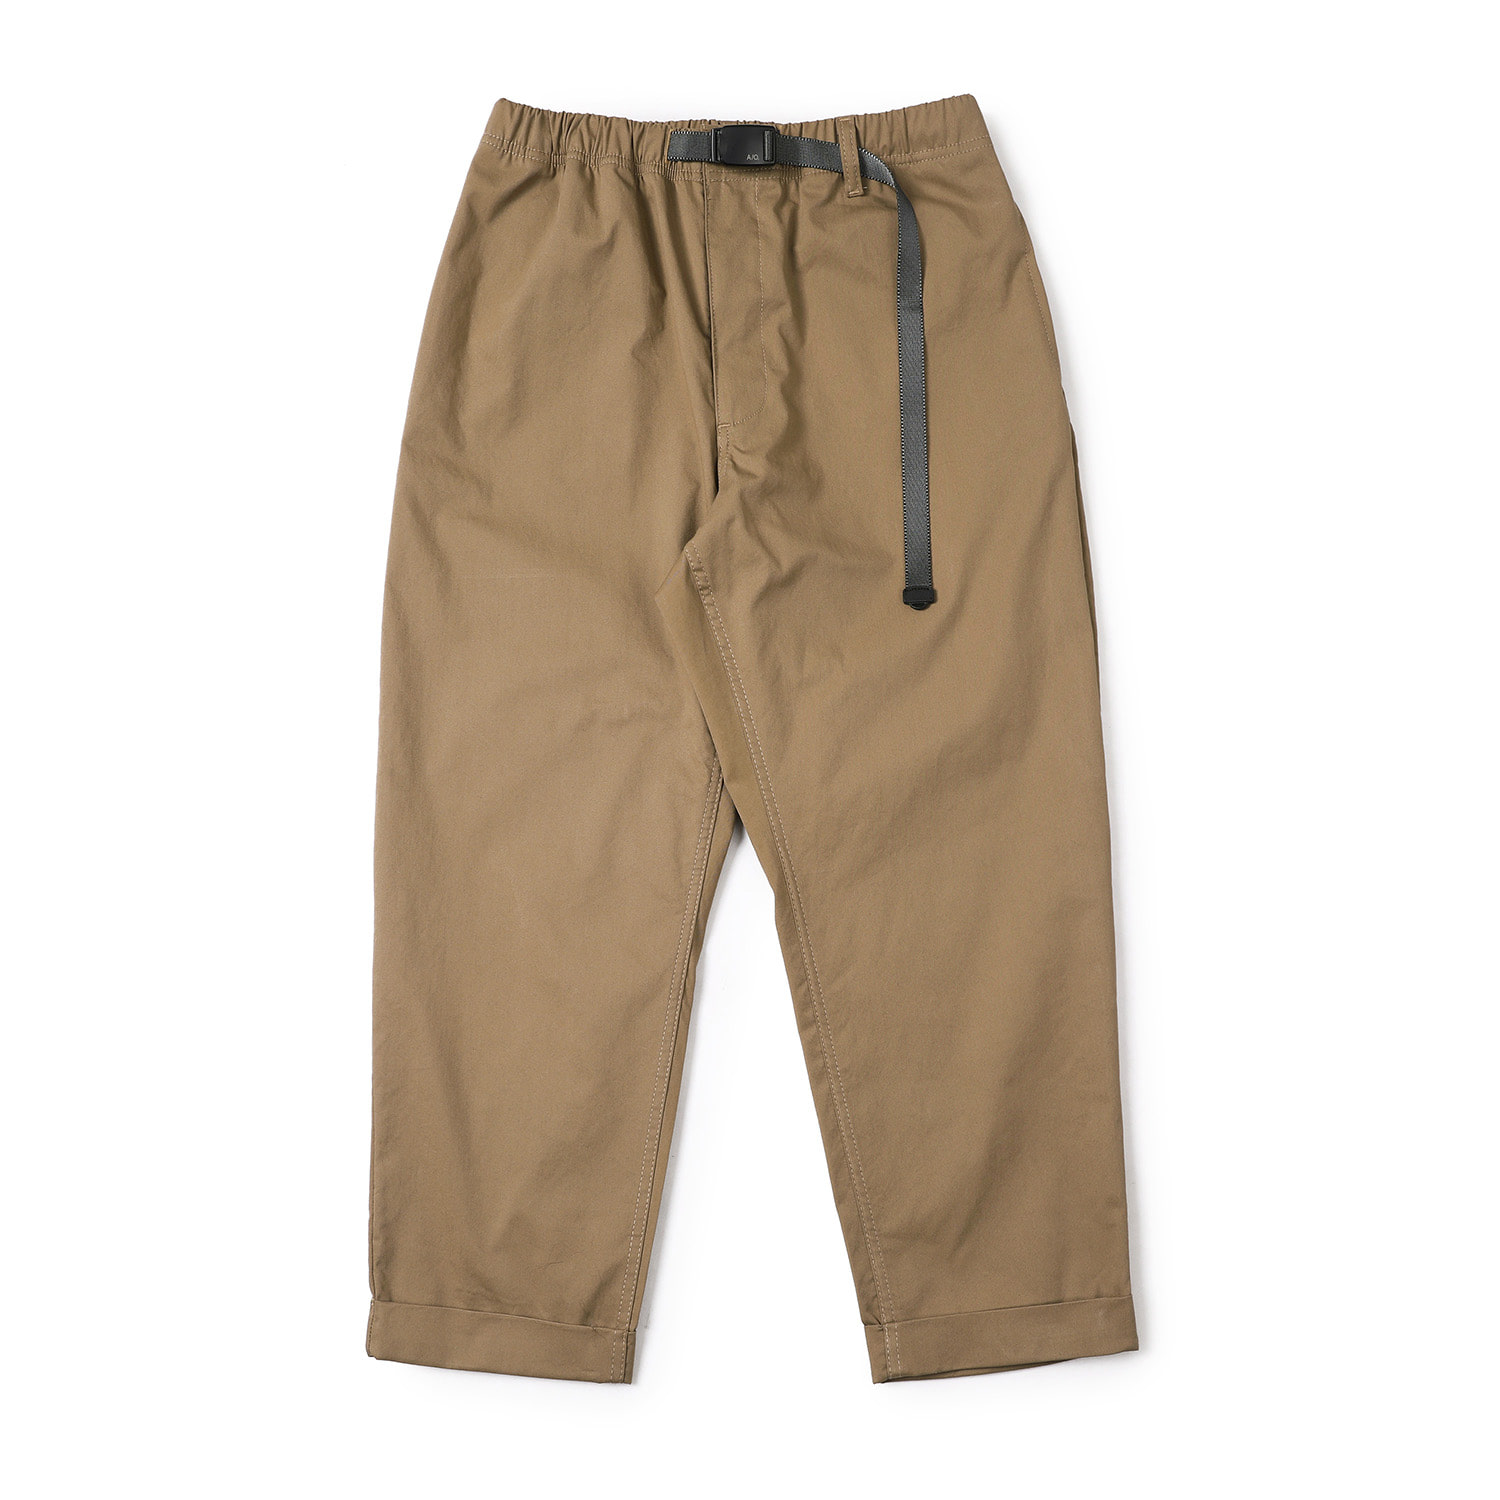 25% OFF_Stroller Dyed Pants (Khaki)